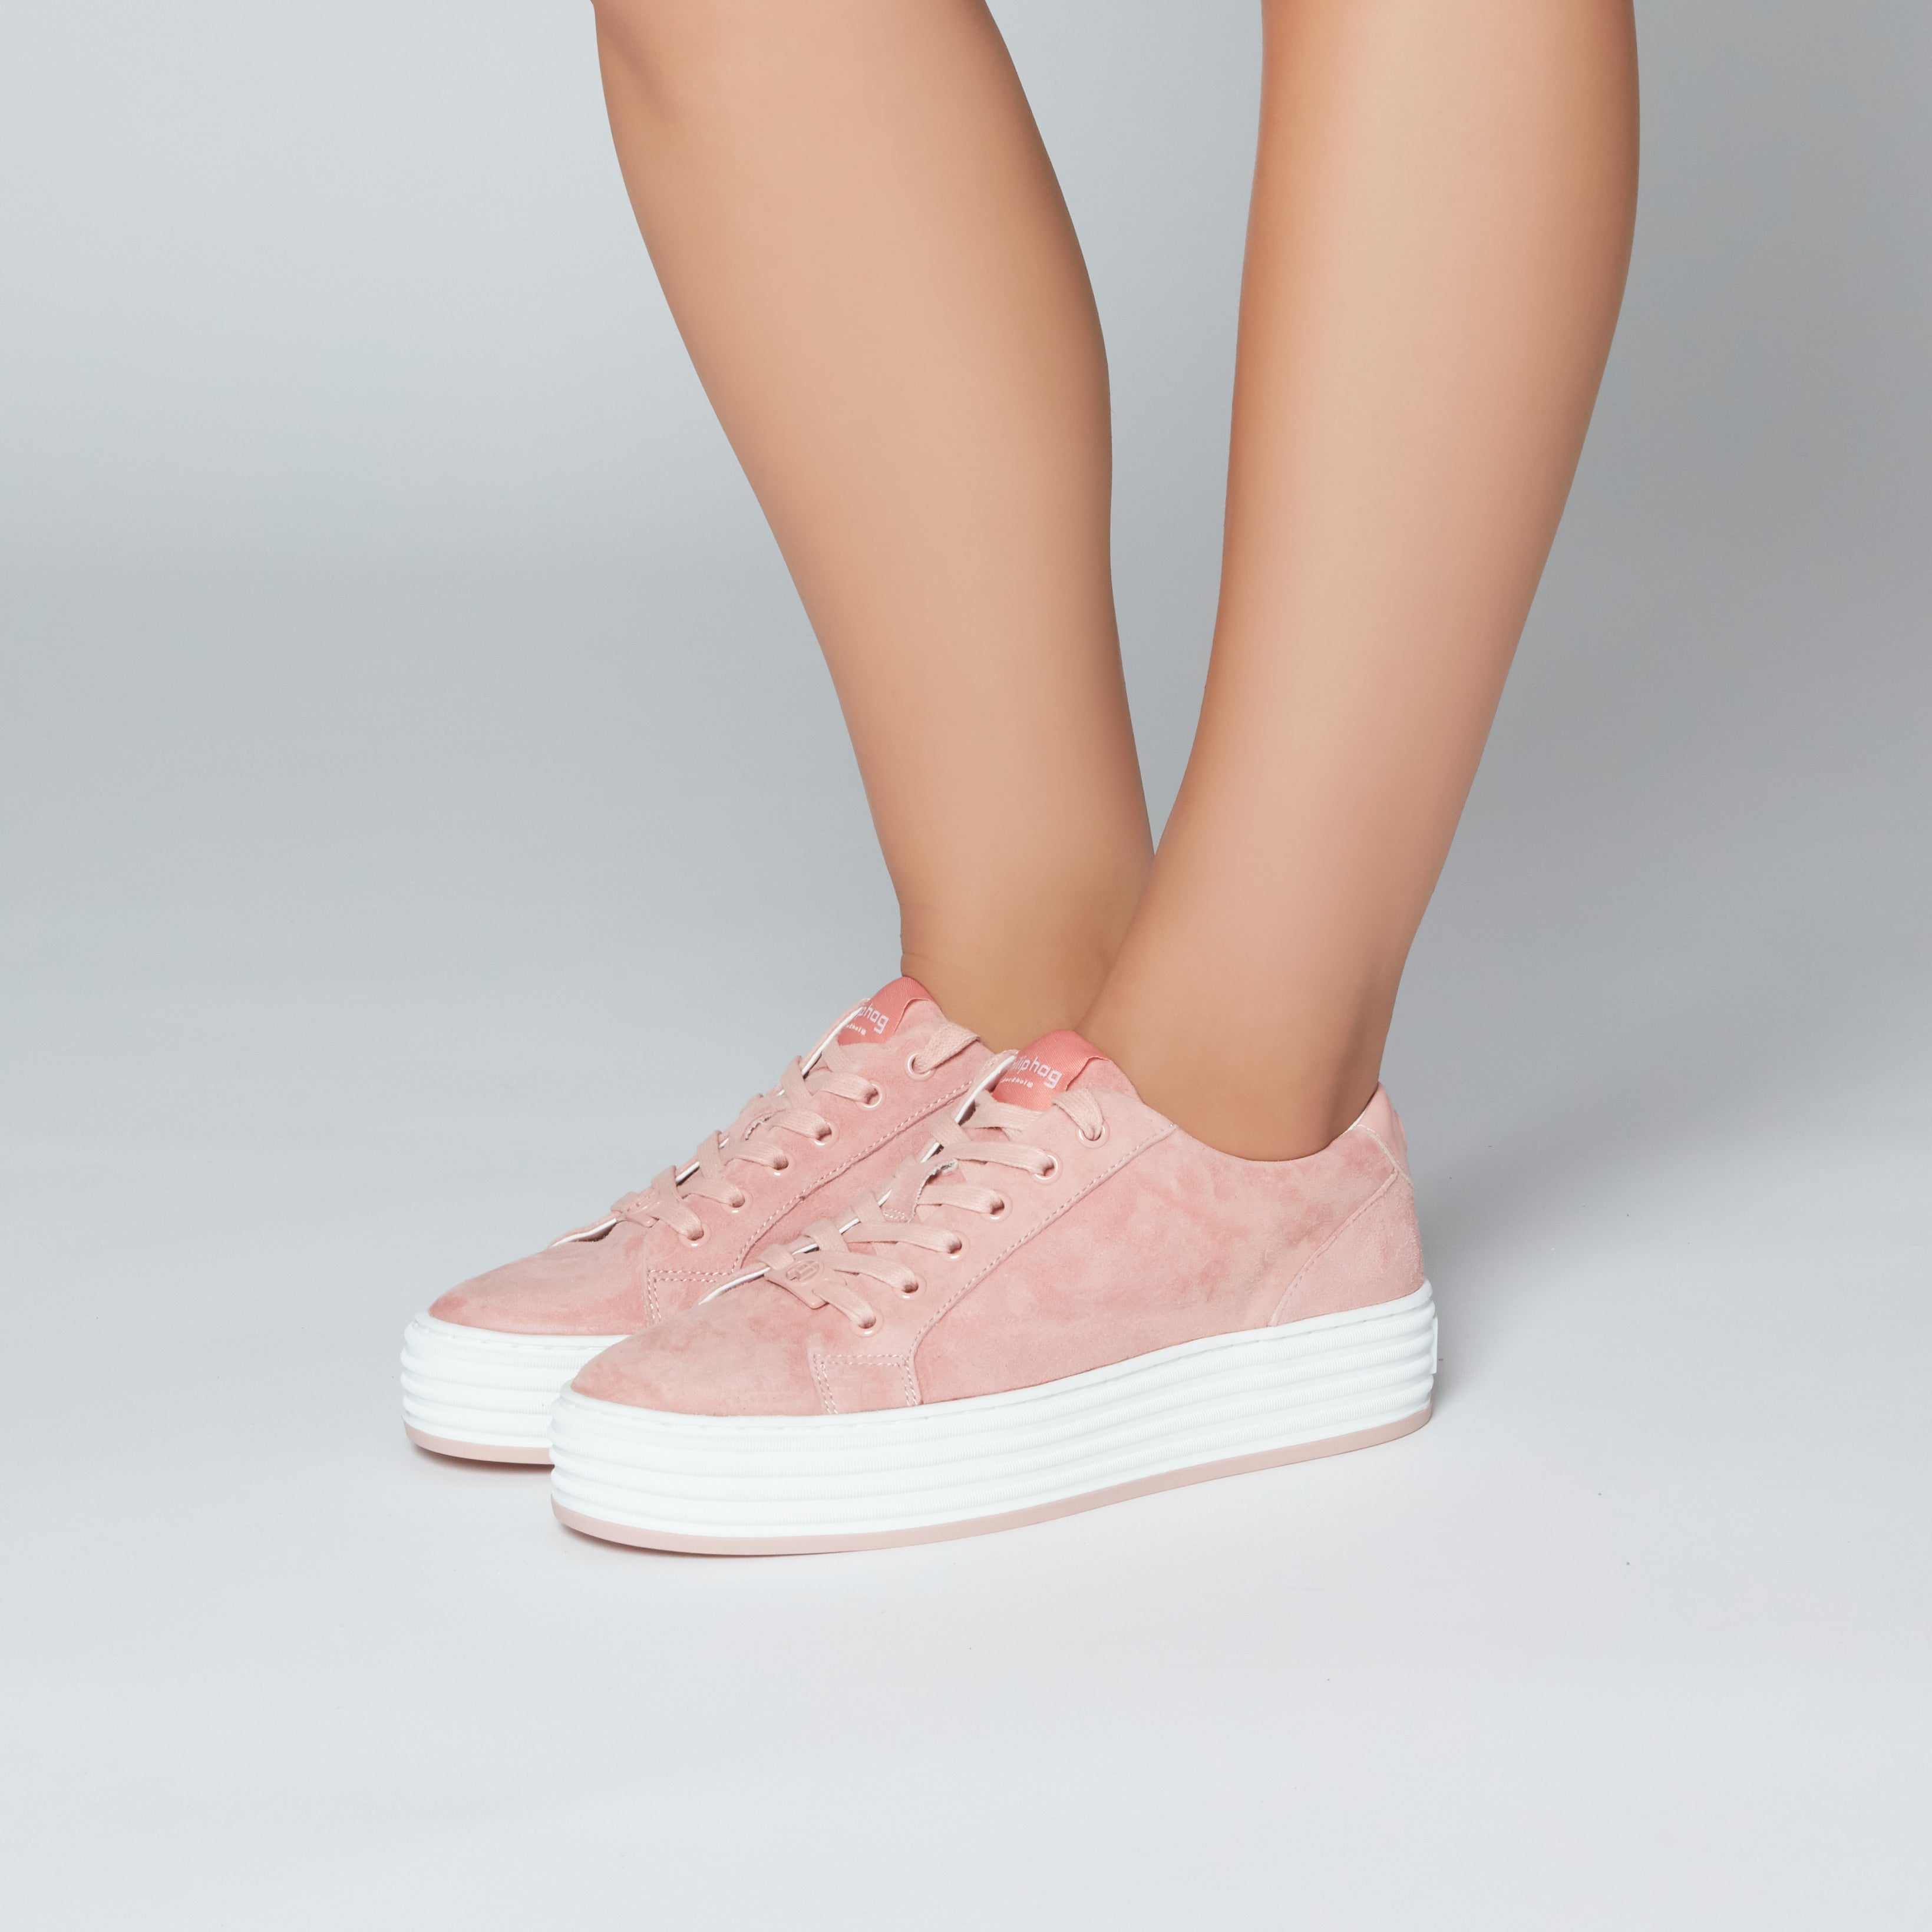 Phillip Hog Molly Suede Trainers for Ladies in Pink